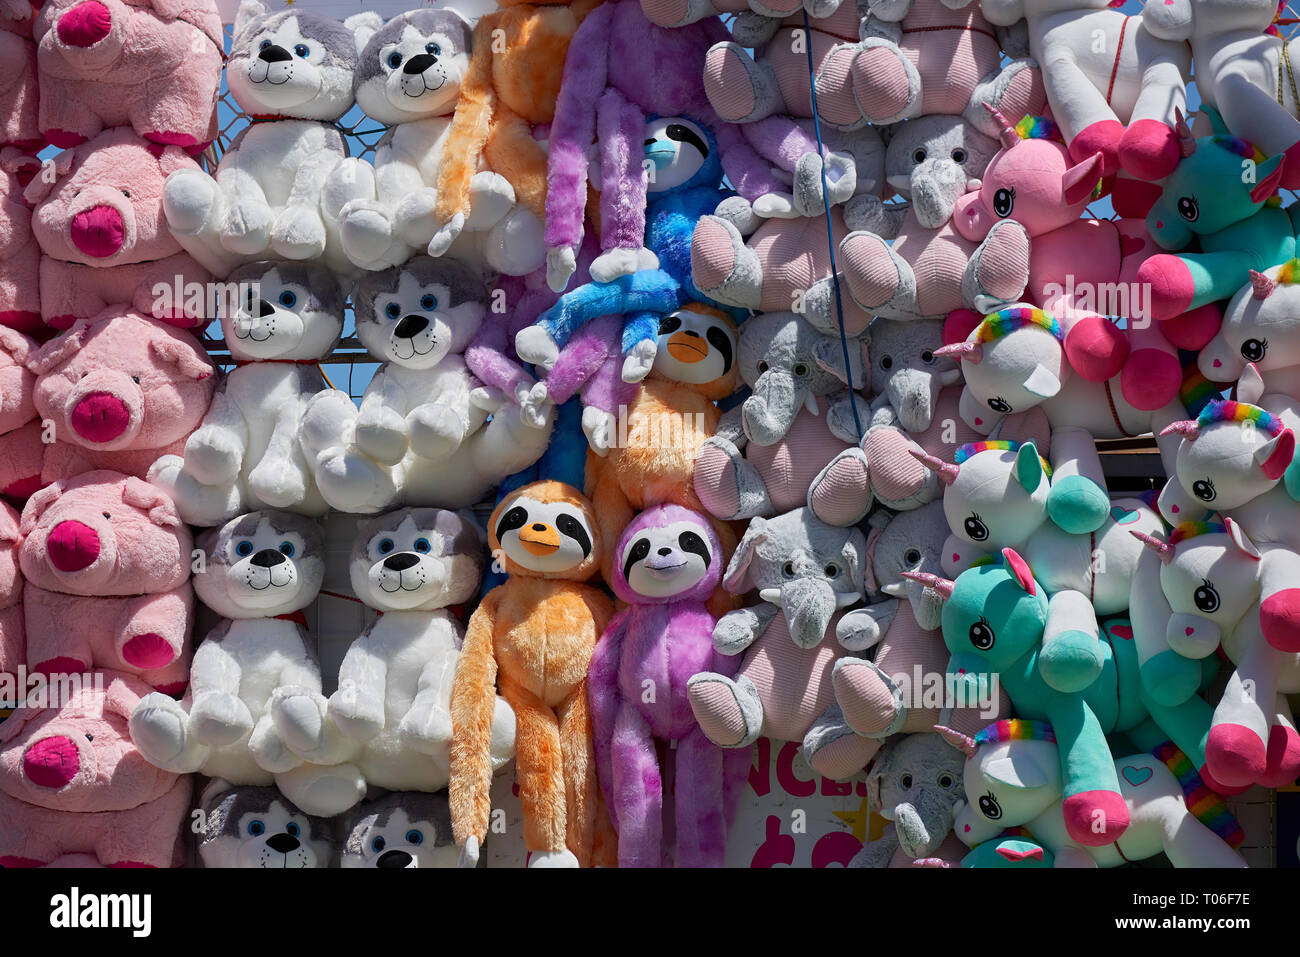 Super Soft Stuffed Animals For Babies, Prize Stuffed Animals Carnival Game High Resolution Stock Photography And Images Alamy